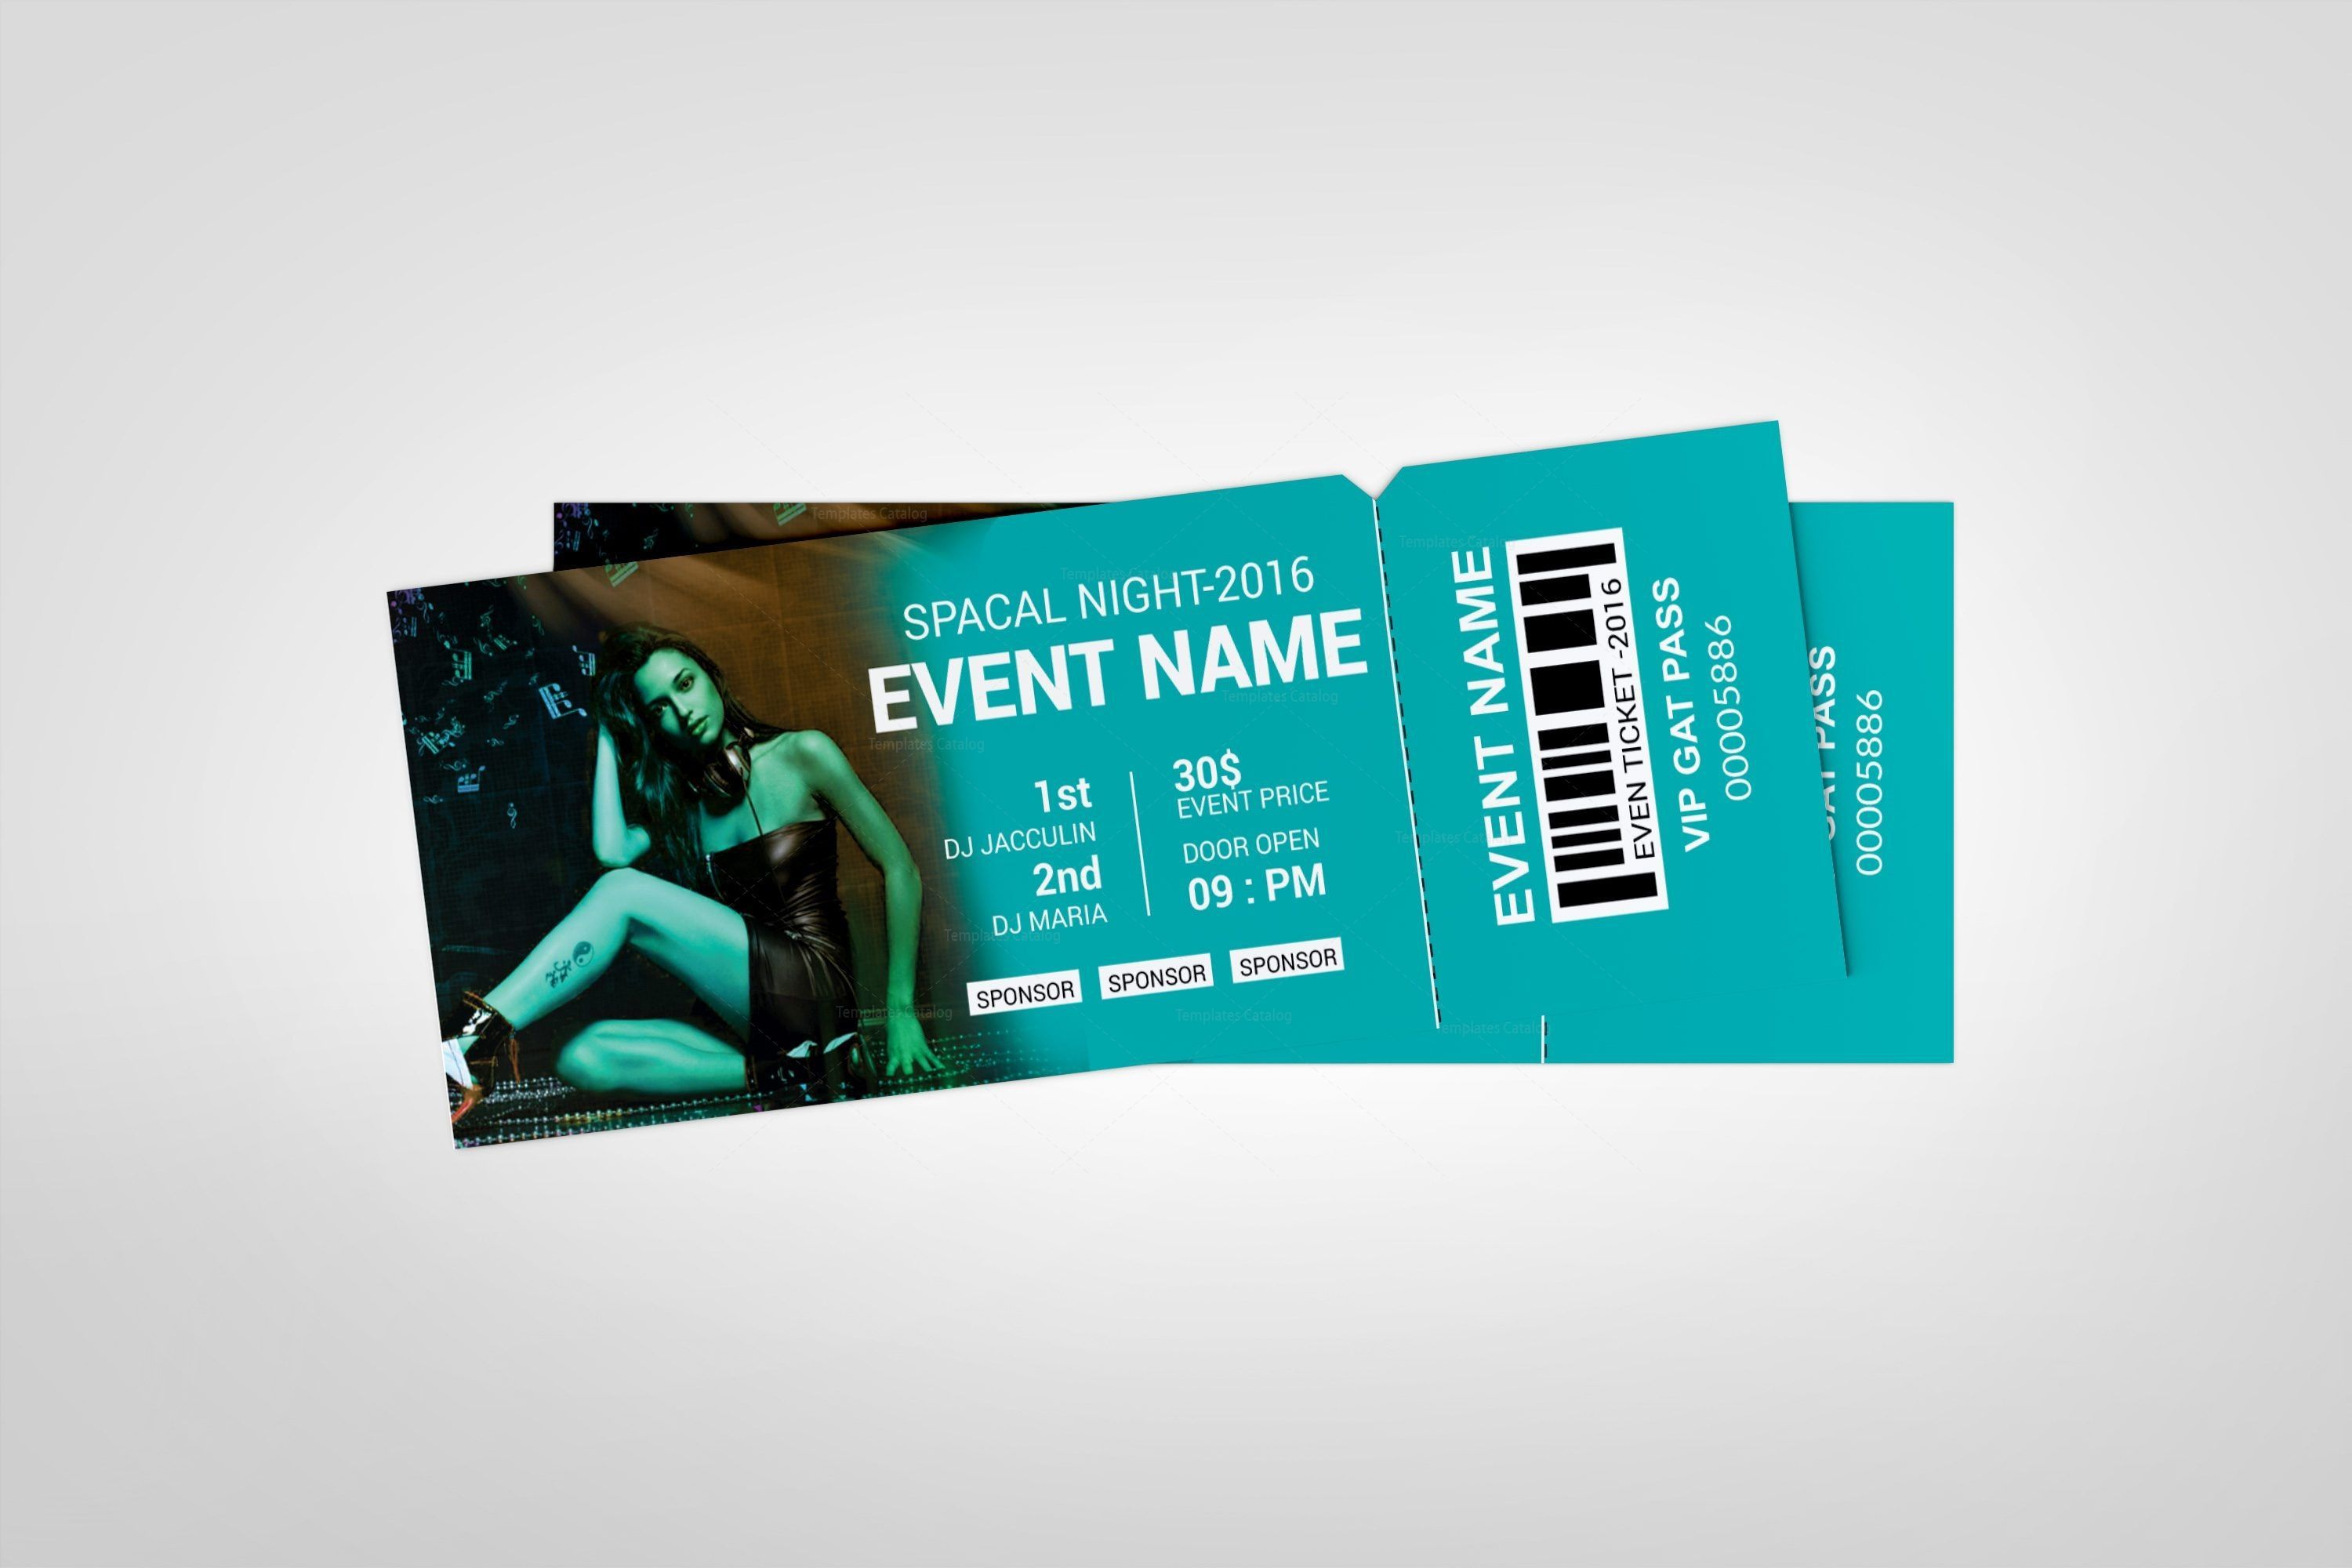 004 Exceptional Event Ticket Template Photoshop Idea  Design Psd Free DownloadFull